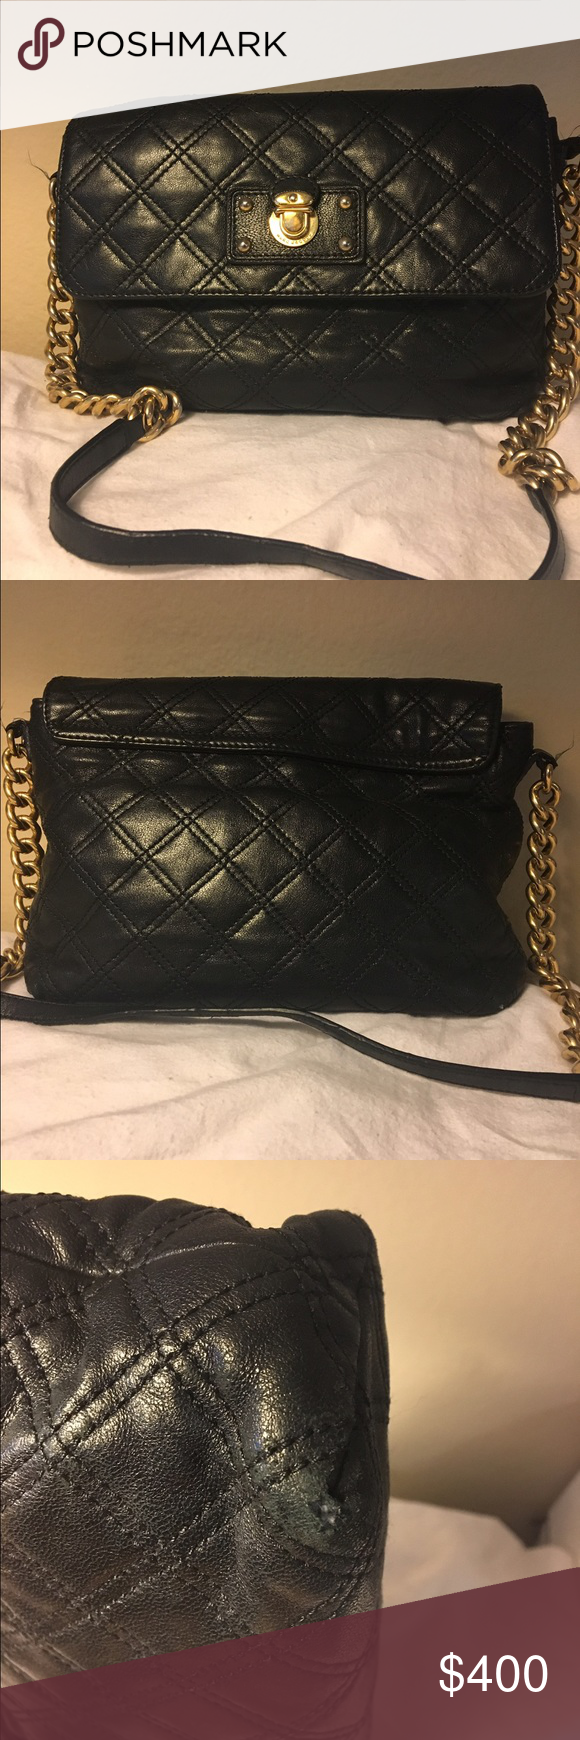 2a2416a225b6 Marc Jacobs Quilted Leather bag